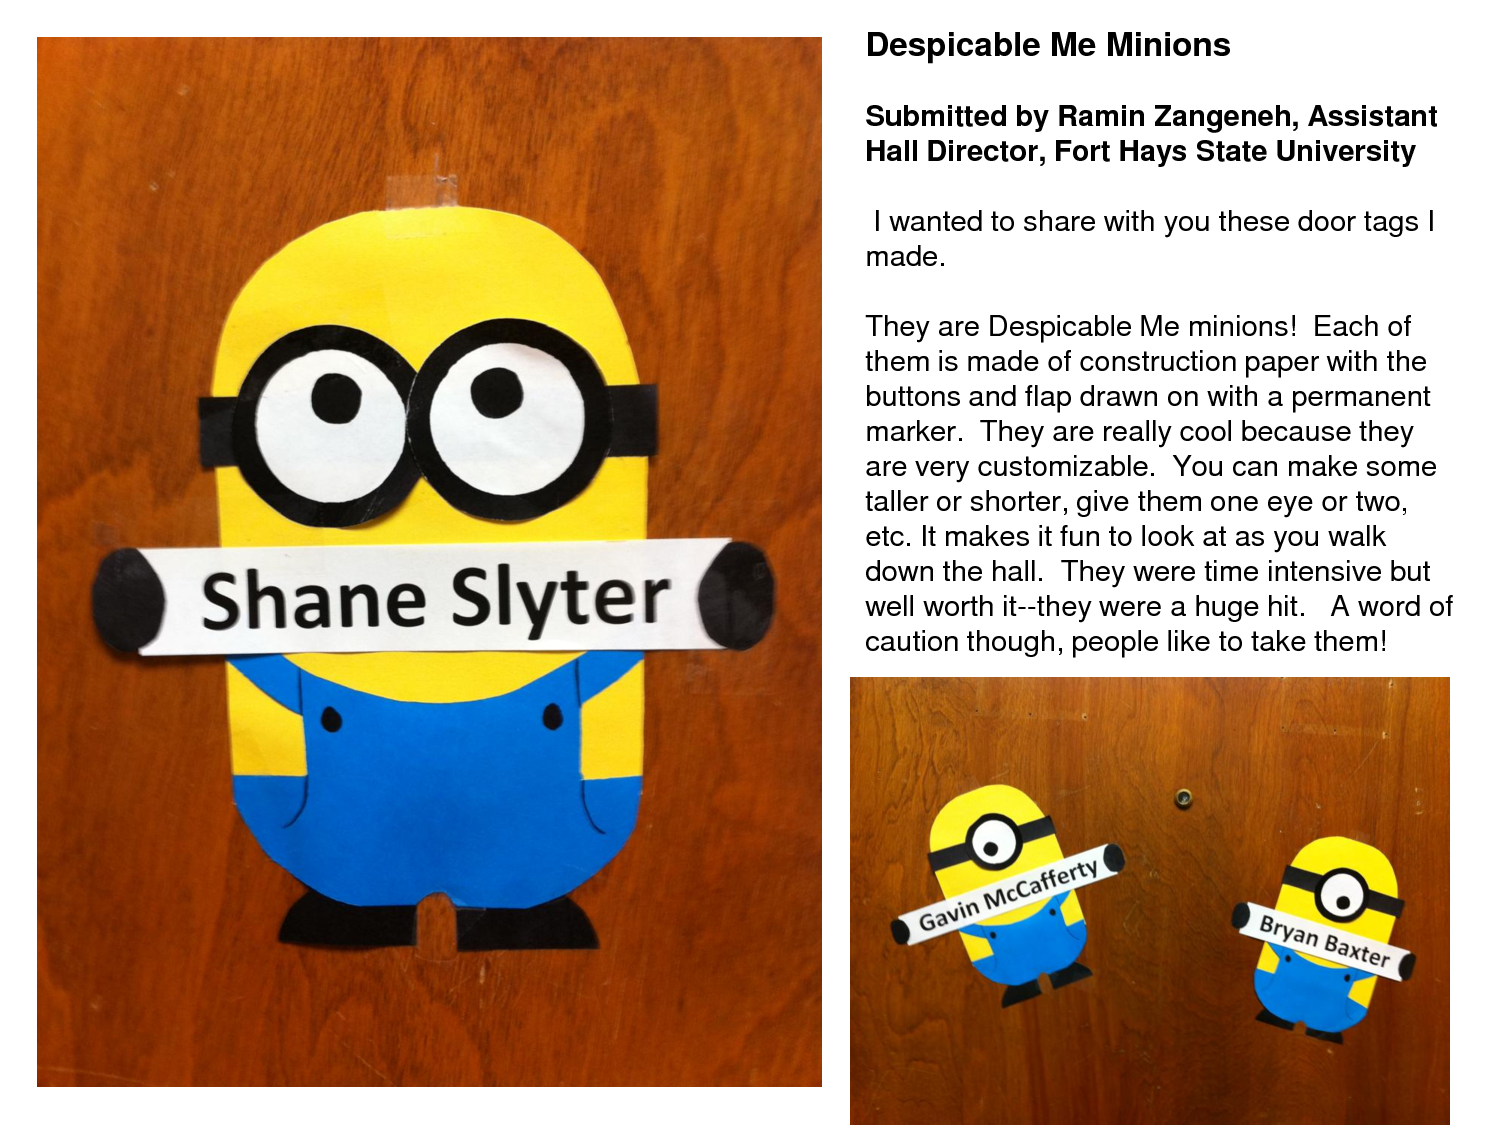 Cartoon classroom door - How To Make The Despicable Me Minions Door Tags Despicable Me Minions Submitted By Ramin